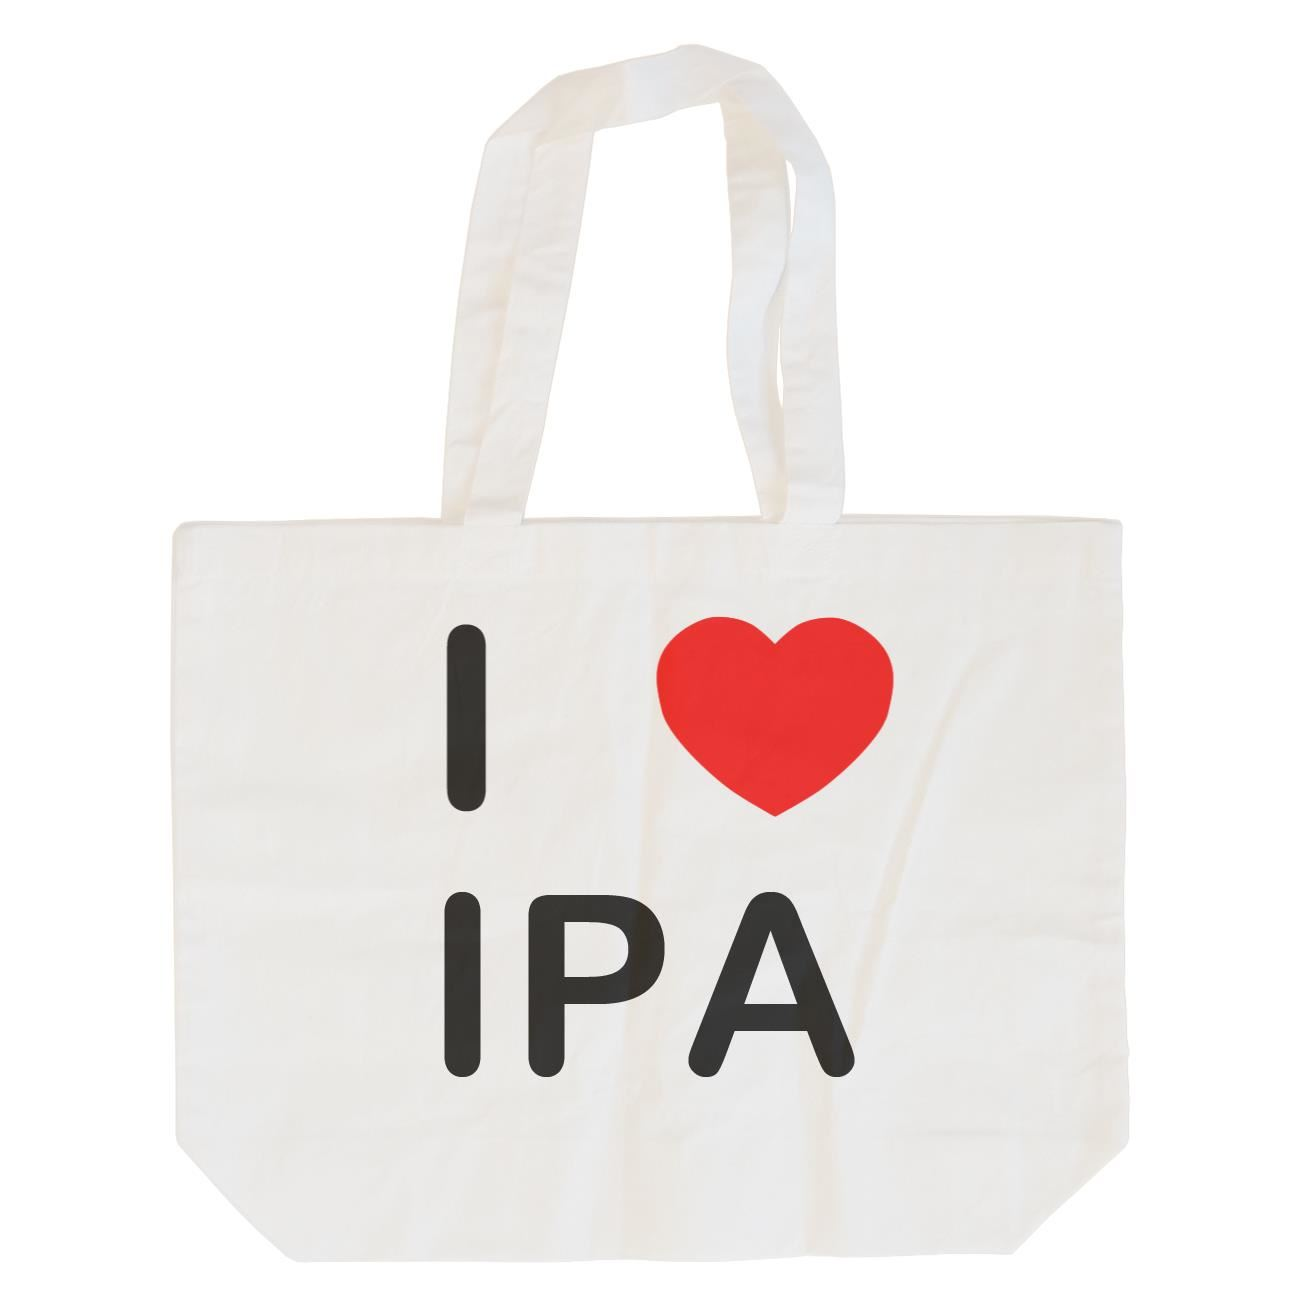 I Love IPA - Cotton Bag | Size choice Tote, Shopper or Sling